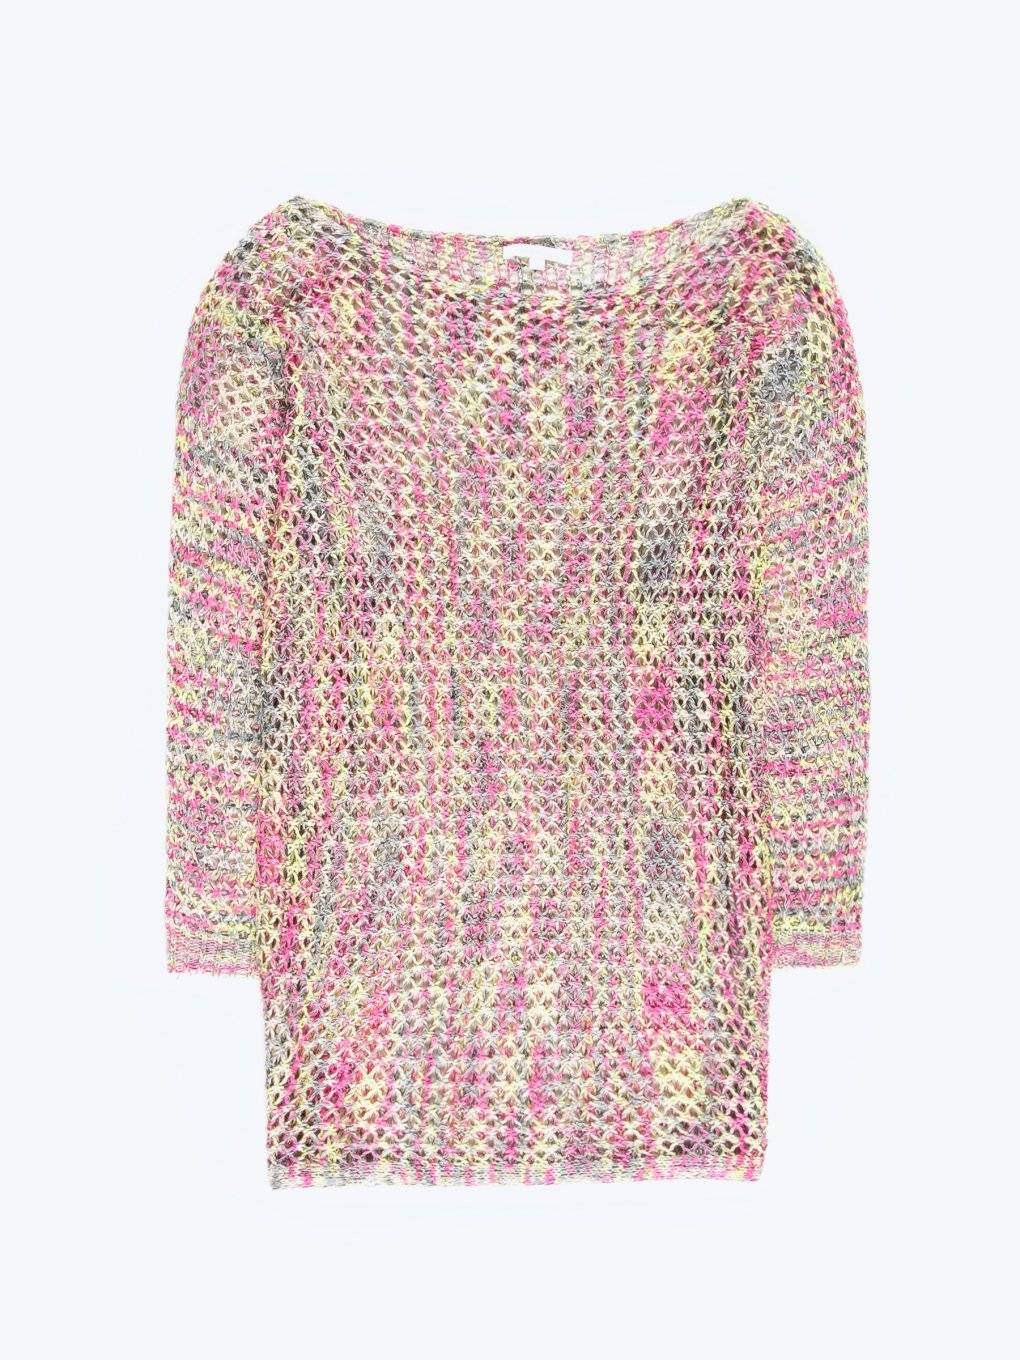 Colourful fishnet jumper